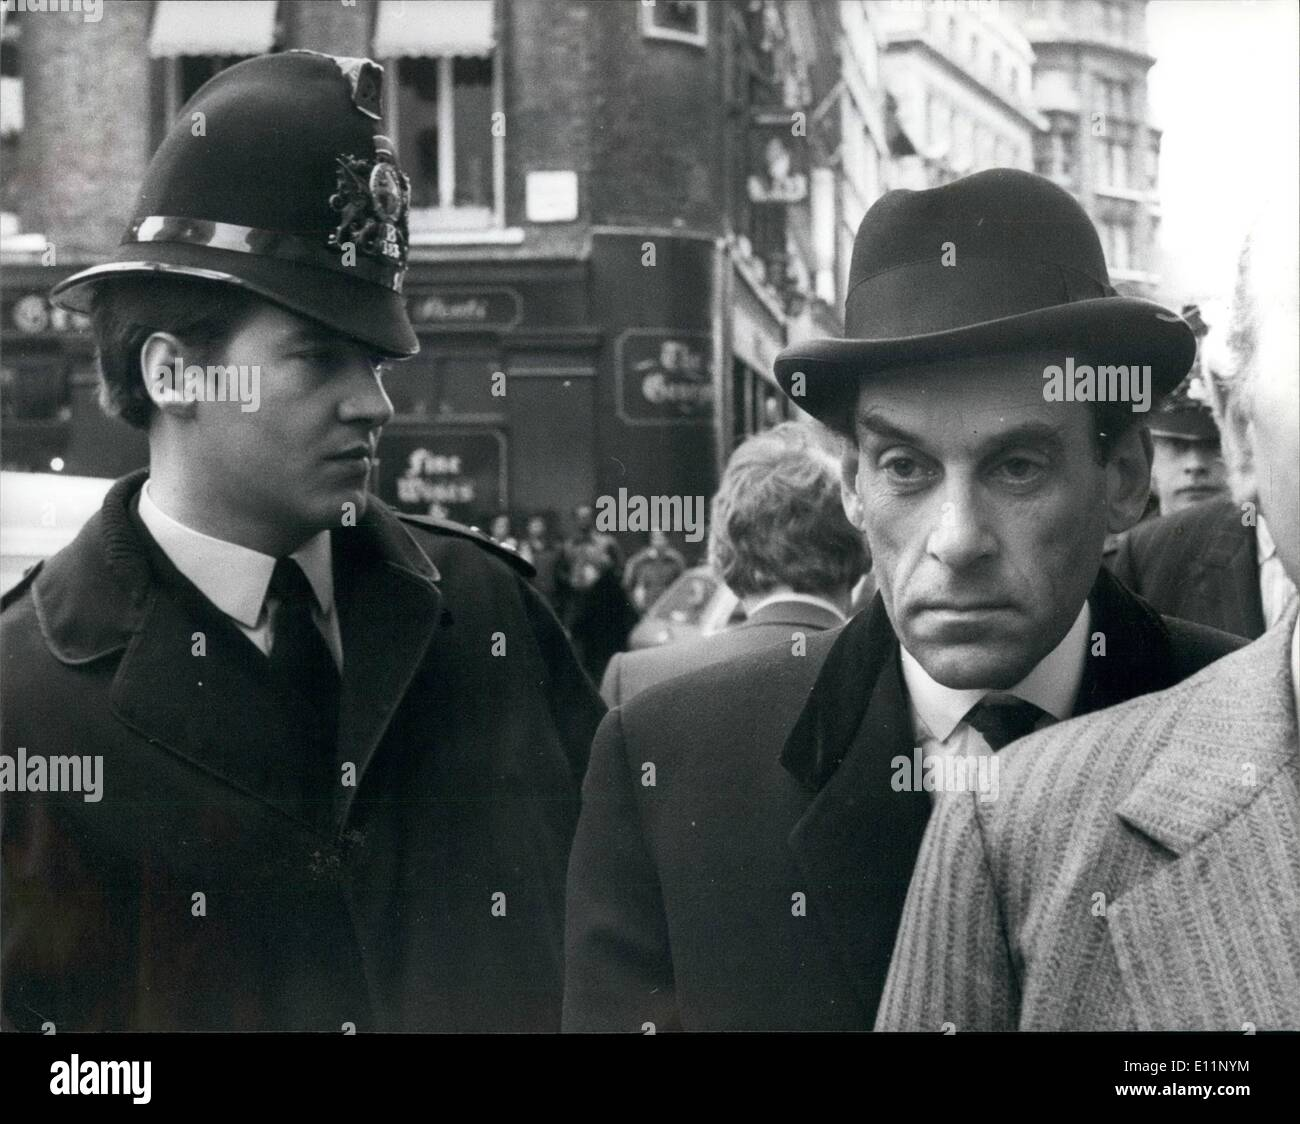 May 05, 1979 - Jeremy Thorpe arrives at the Old Bailey: Arriving at the Central Criminal Court (Old Bailey) forStock Photo